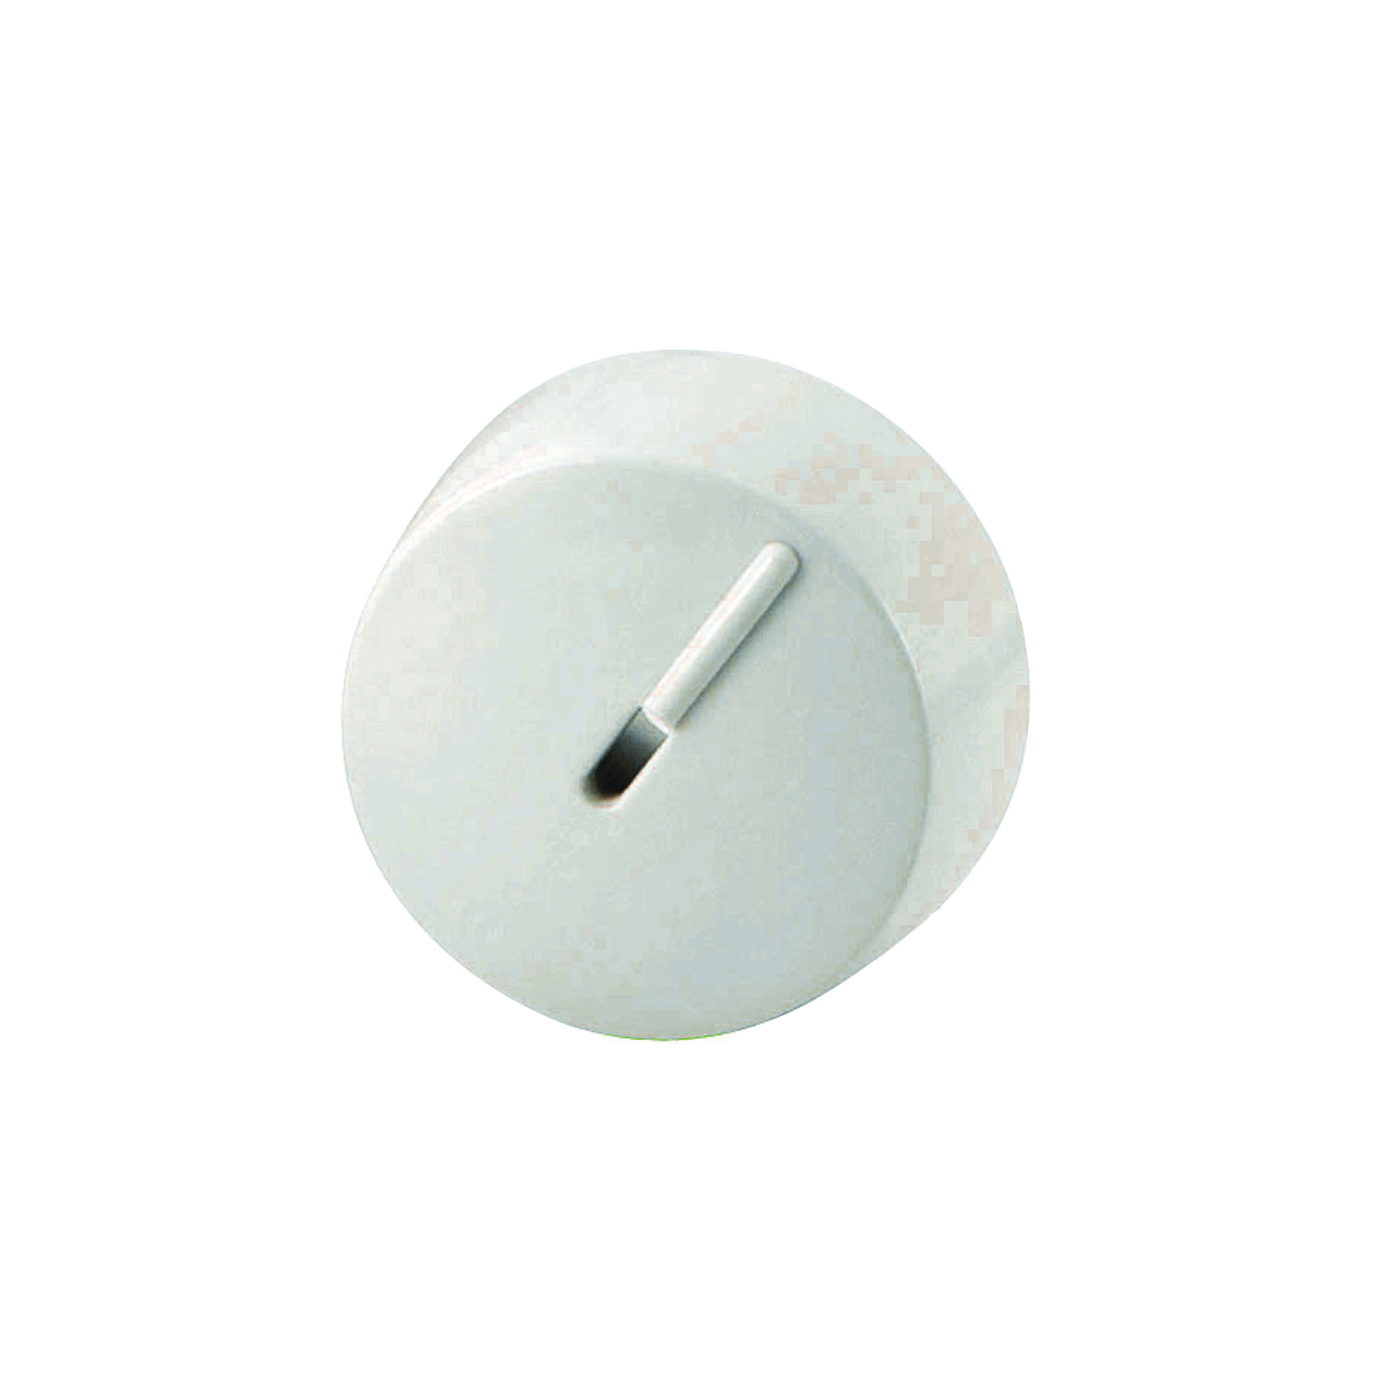 Picture of Eaton Wiring Devices RKRD-W-BP Replacement Knob, Polycarbonate, White, For: RI061, RI06P and RI101 Rotary Dimmers